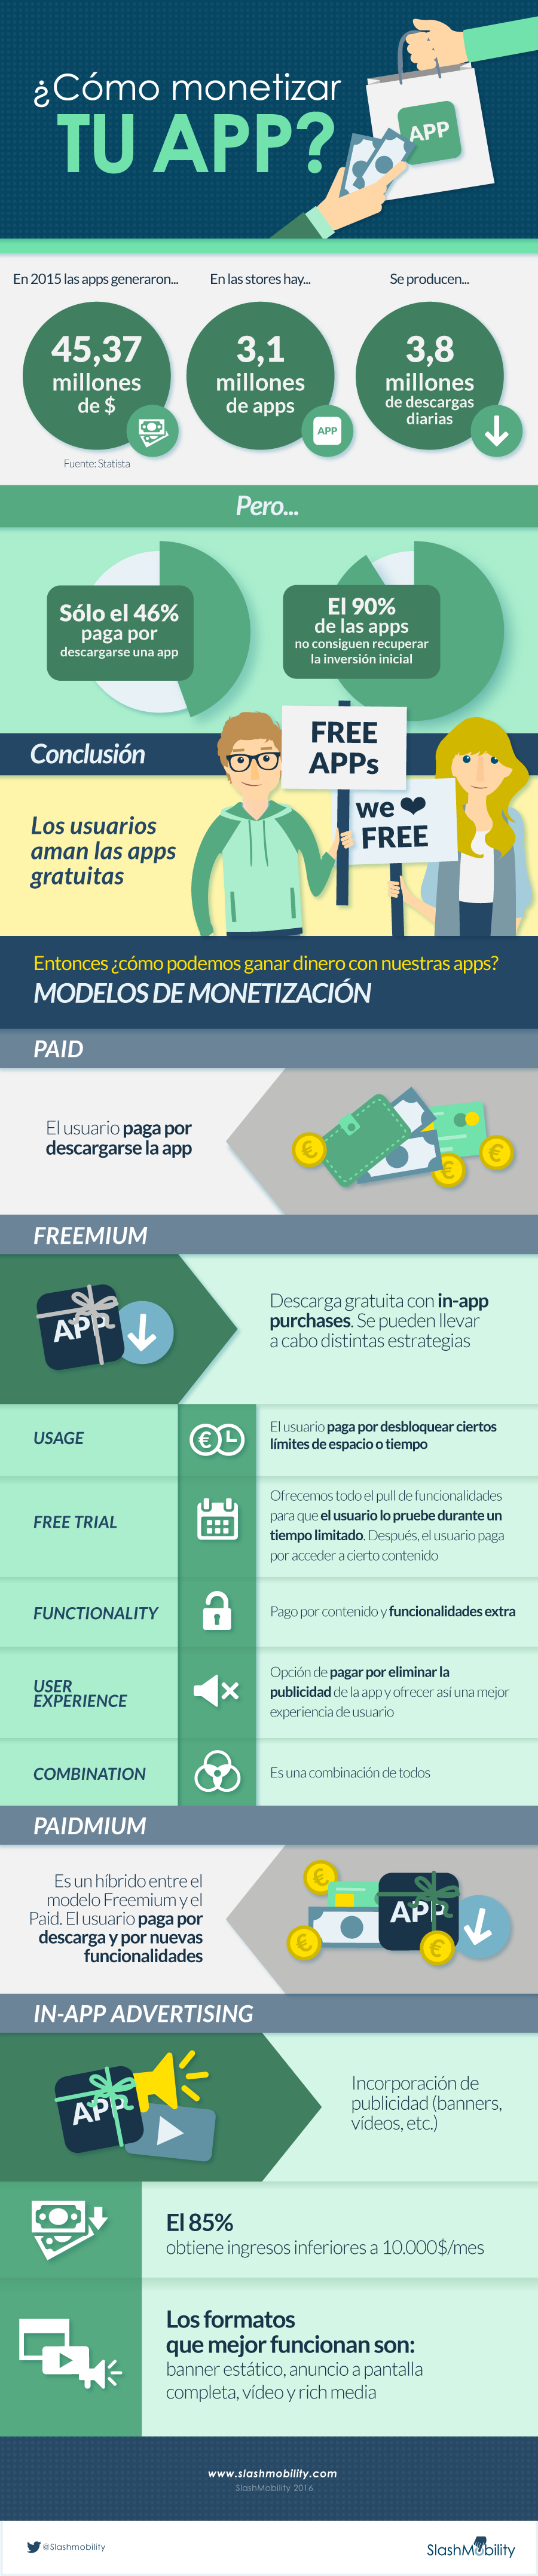 infografia-monetizar-apps